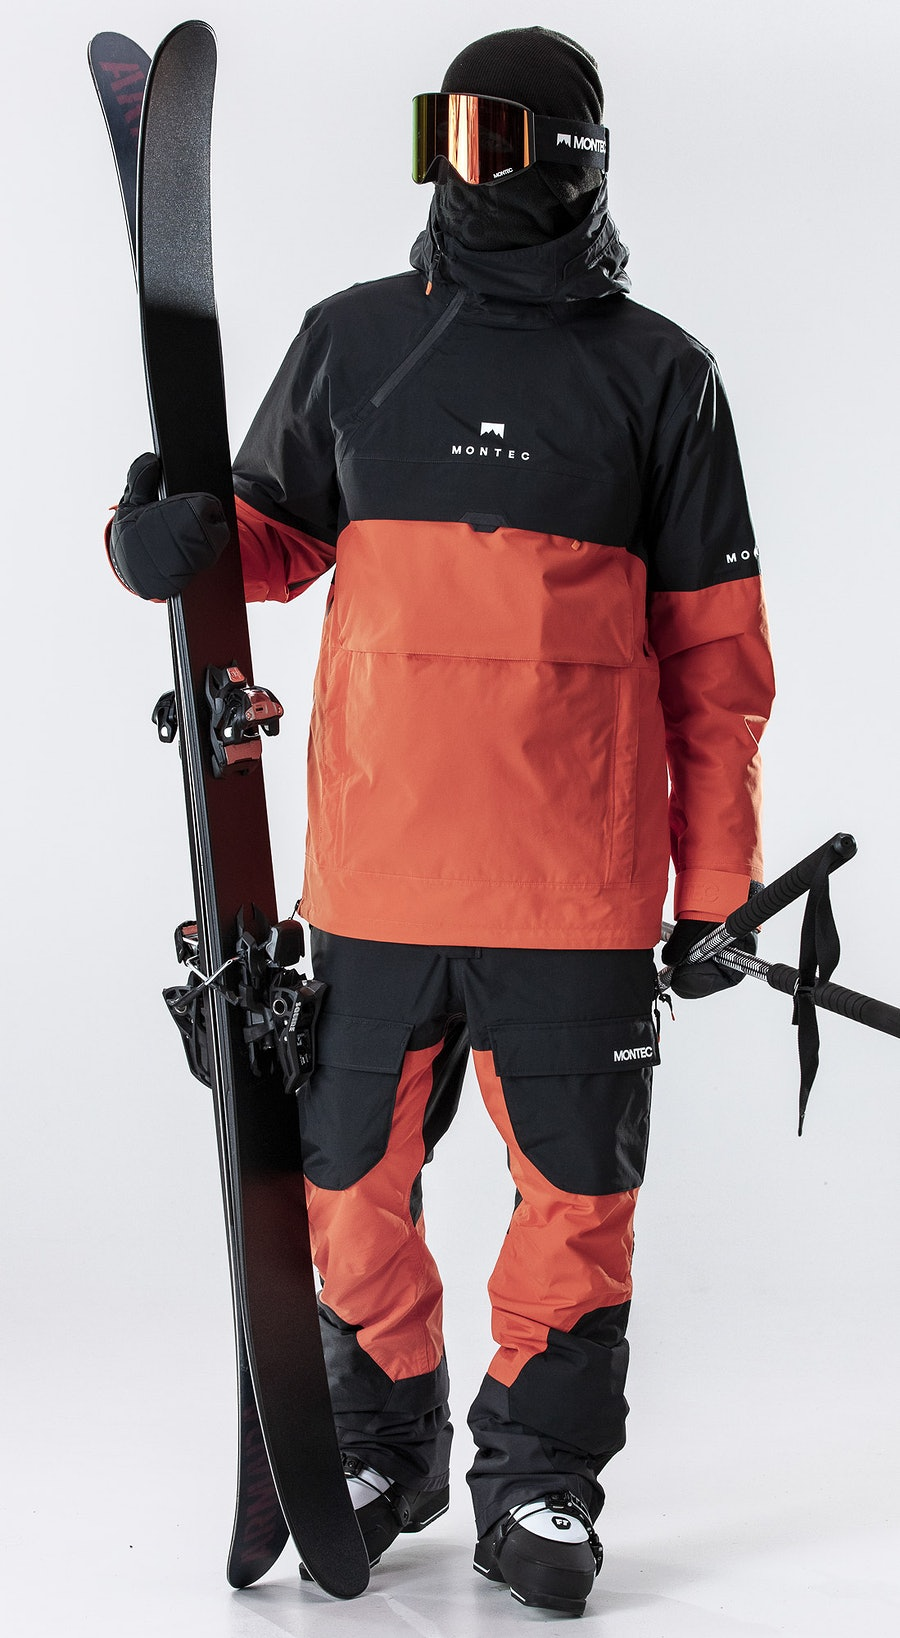 Montec Dune Black/Orange Ski Clothing Multi